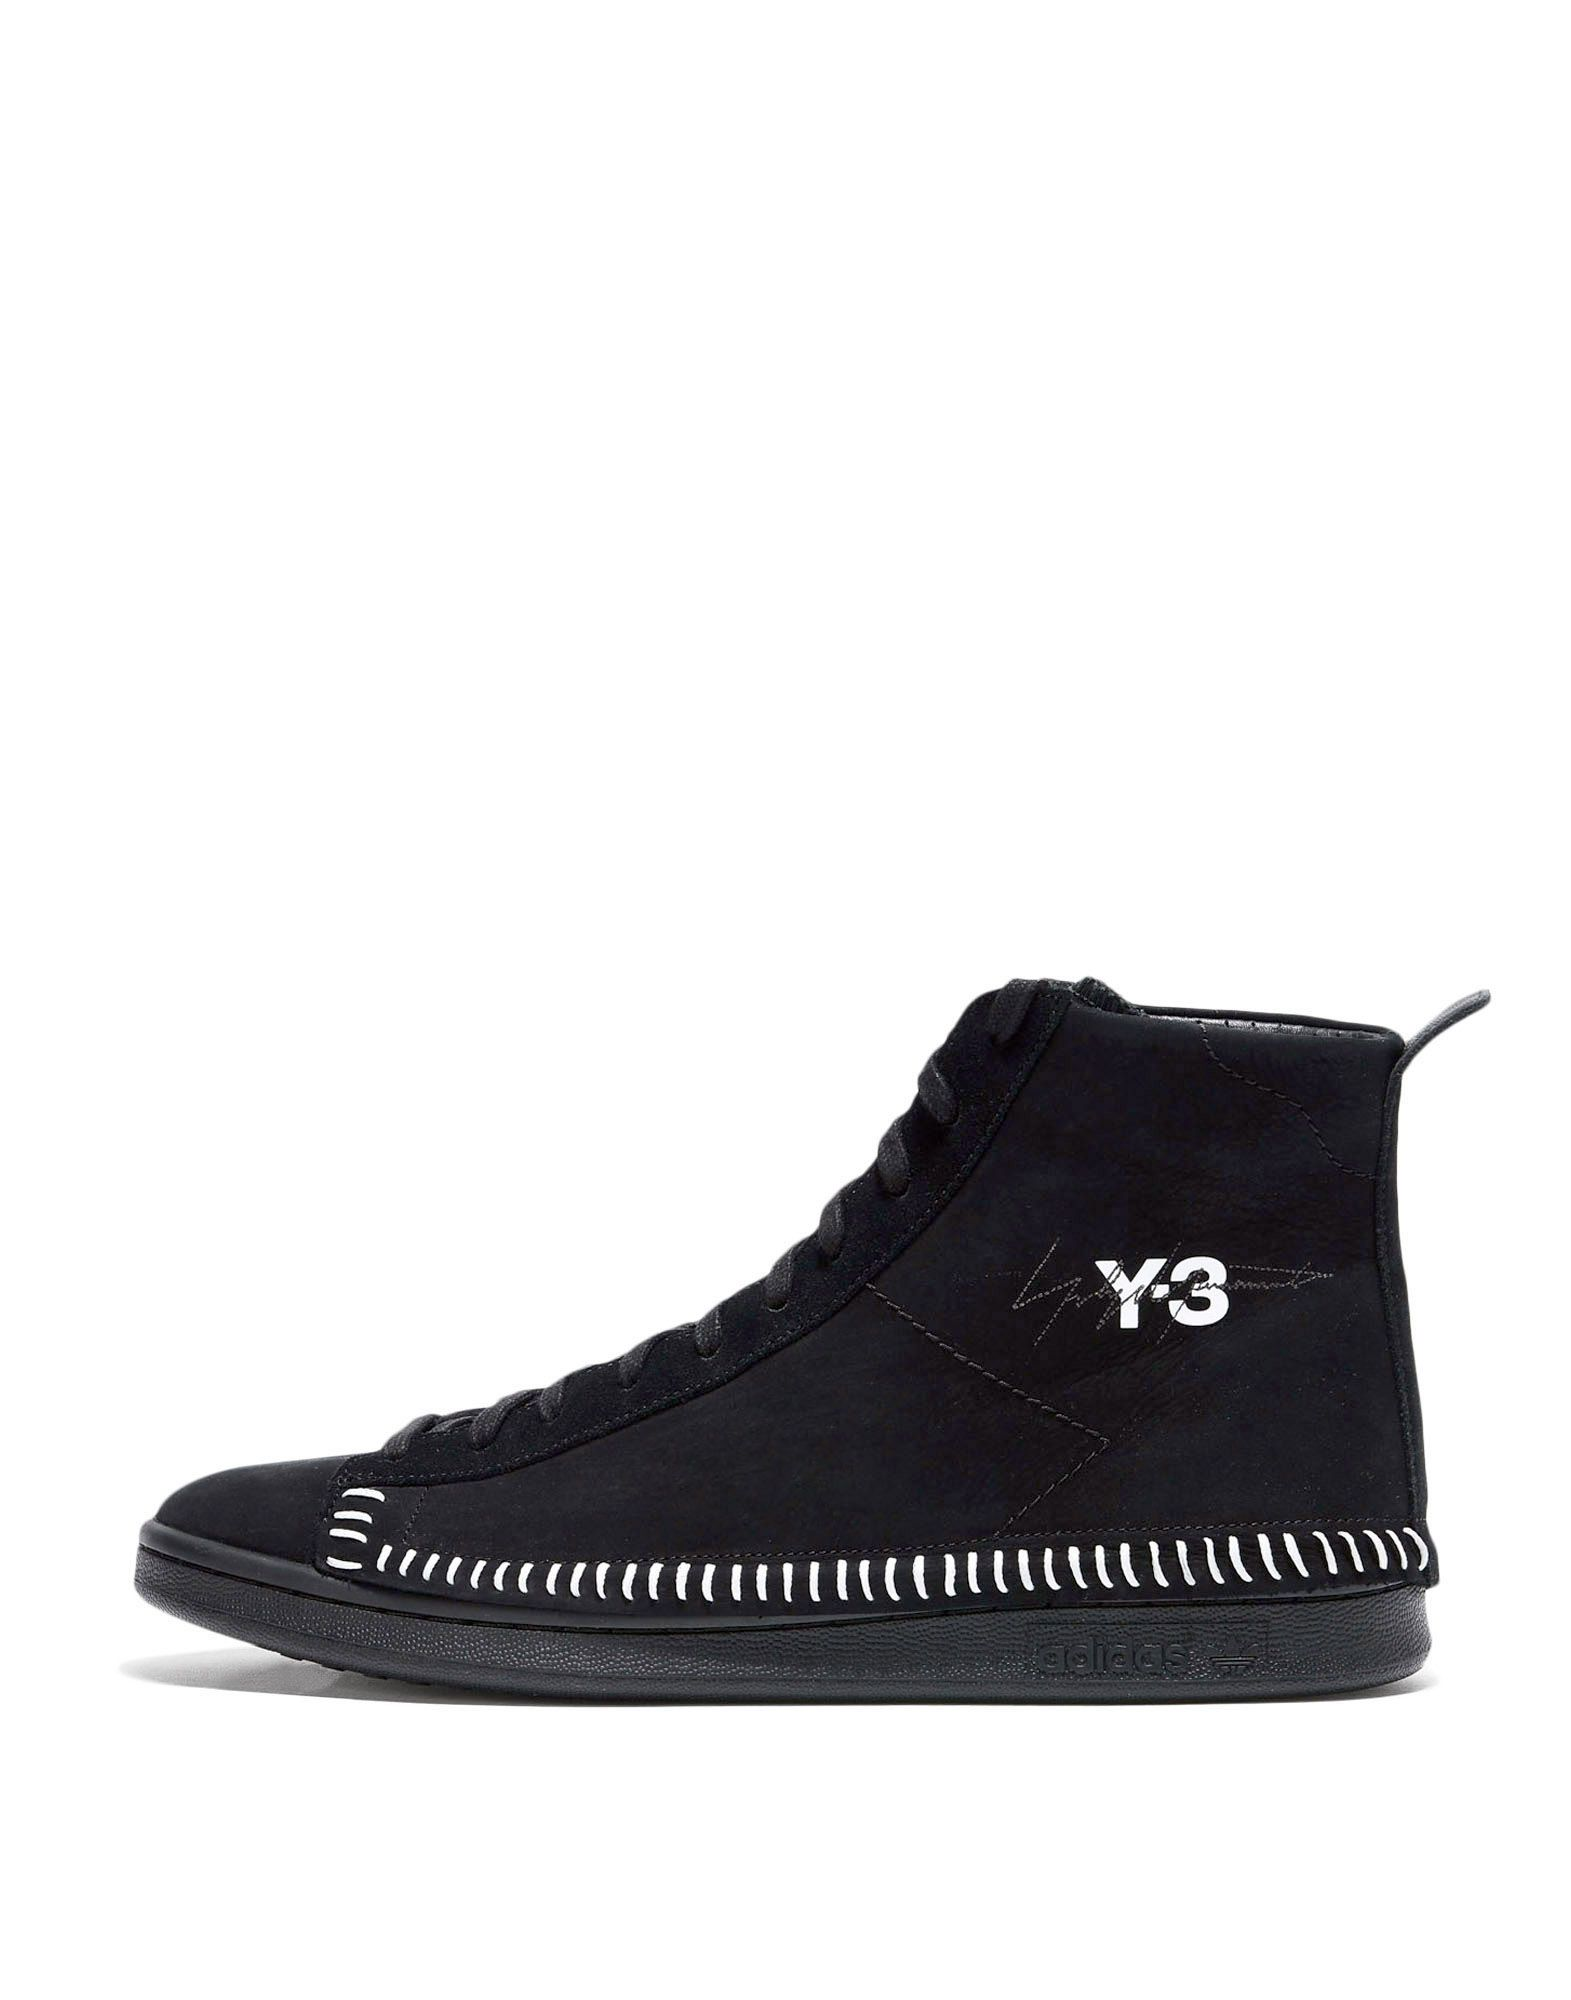 Y-3 Y-3 Bynder High High-top sneakers E f